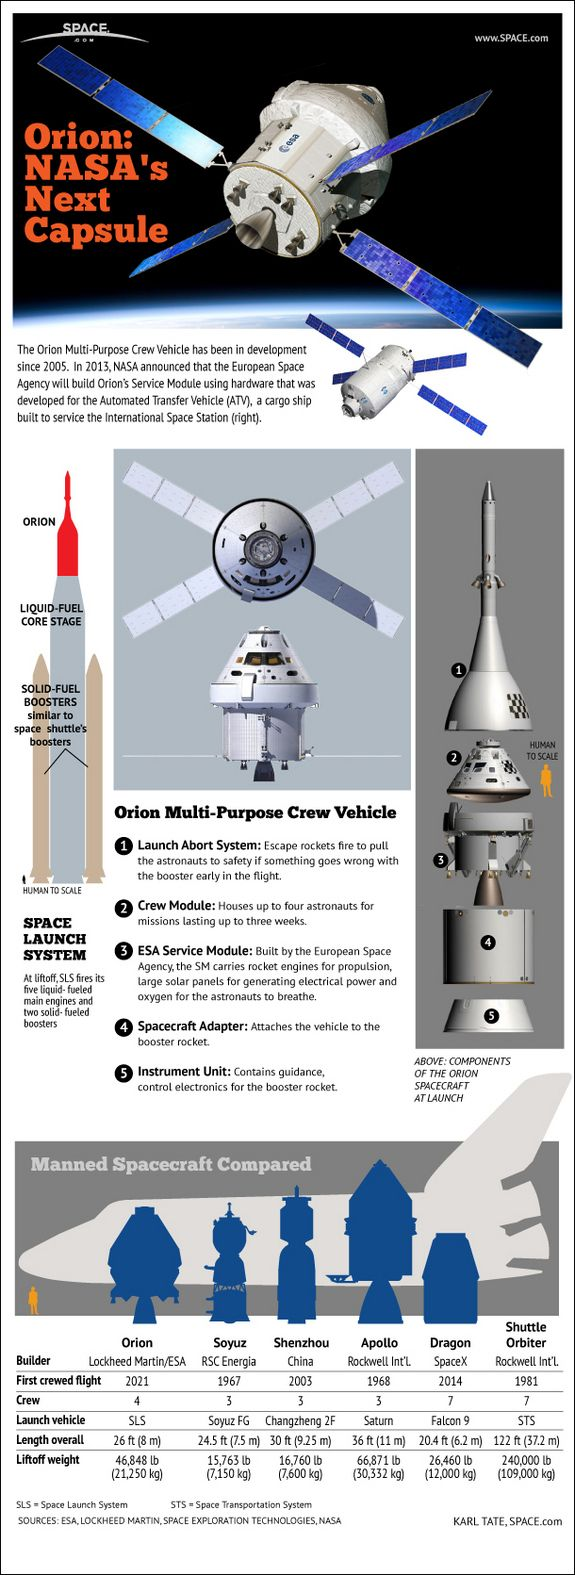 Orion Explained: NASA's Multi-Purpose Crew Vehicle (Infographic)  by Karl Tate